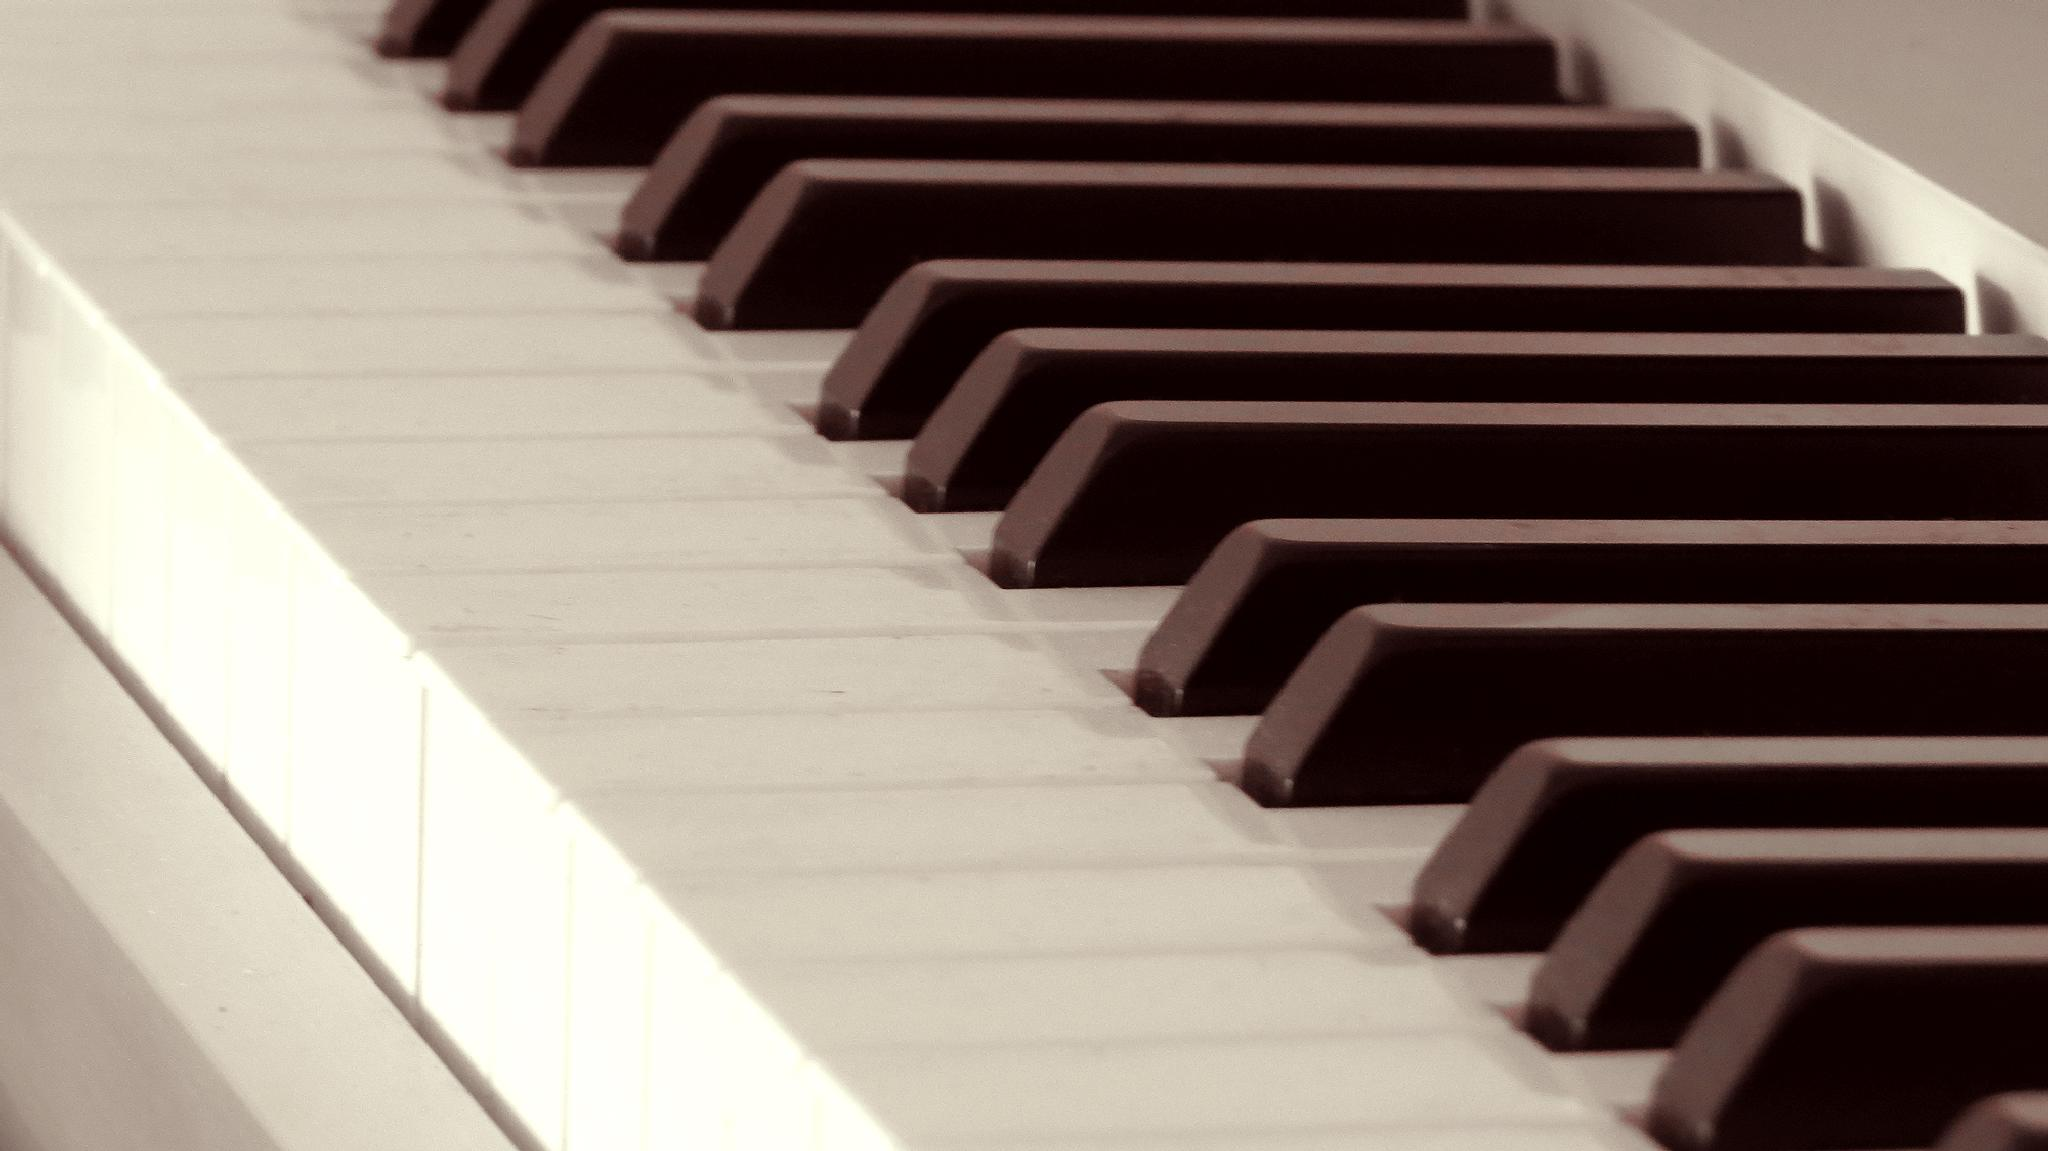 Piano Keys in Sepia by Alisha Mari Crawford